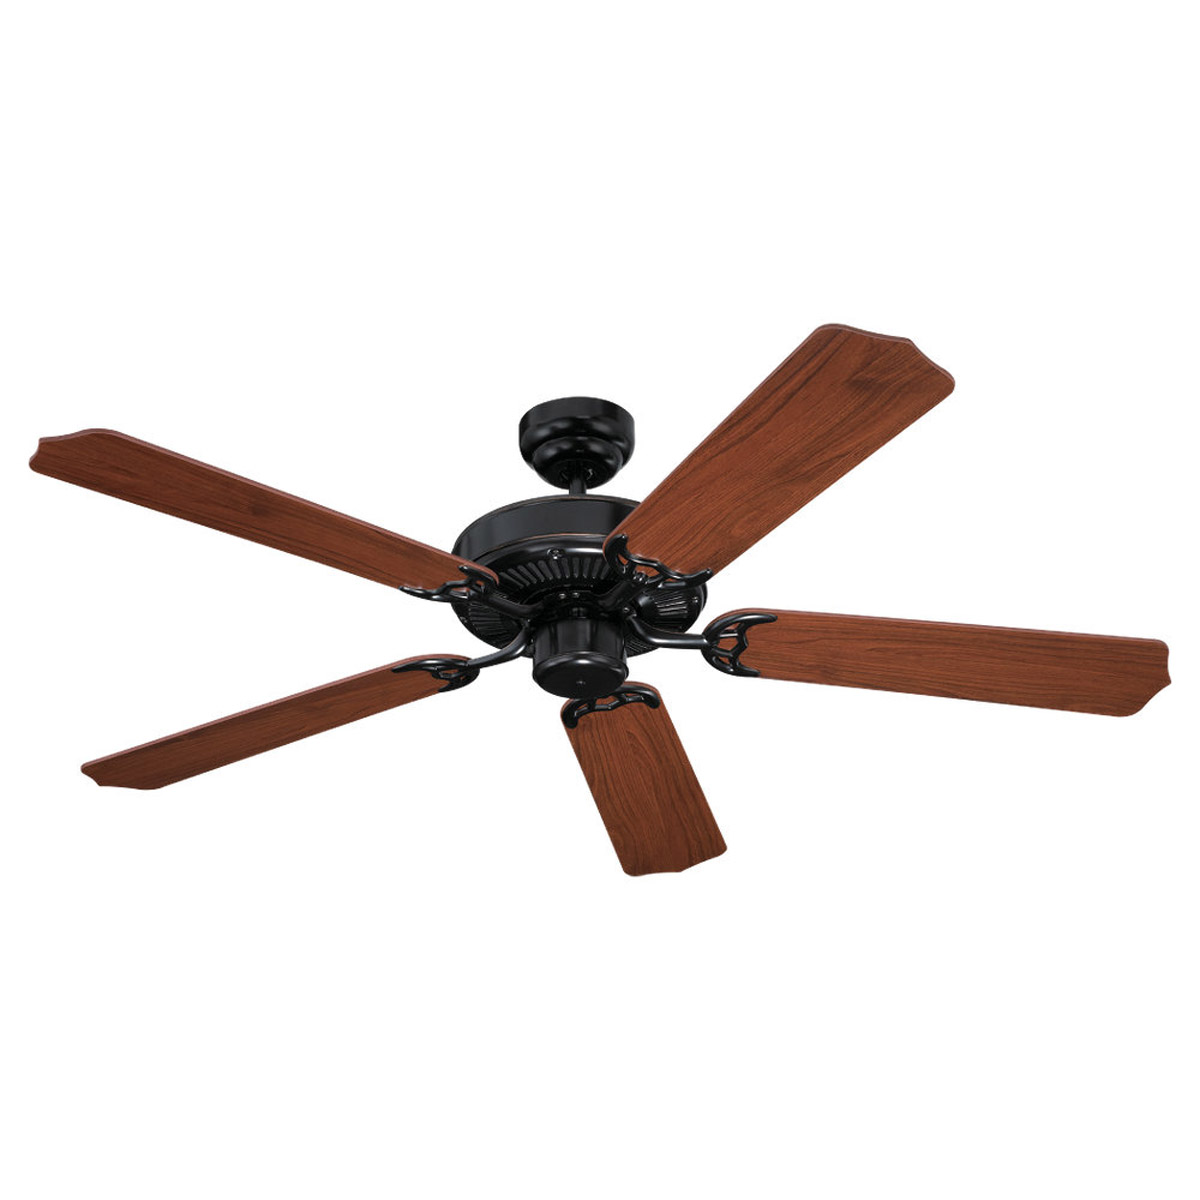 Sea Gull Lighting Quality Max Indoor Ceiling Fan in Vintage Brown 15030-862 photo